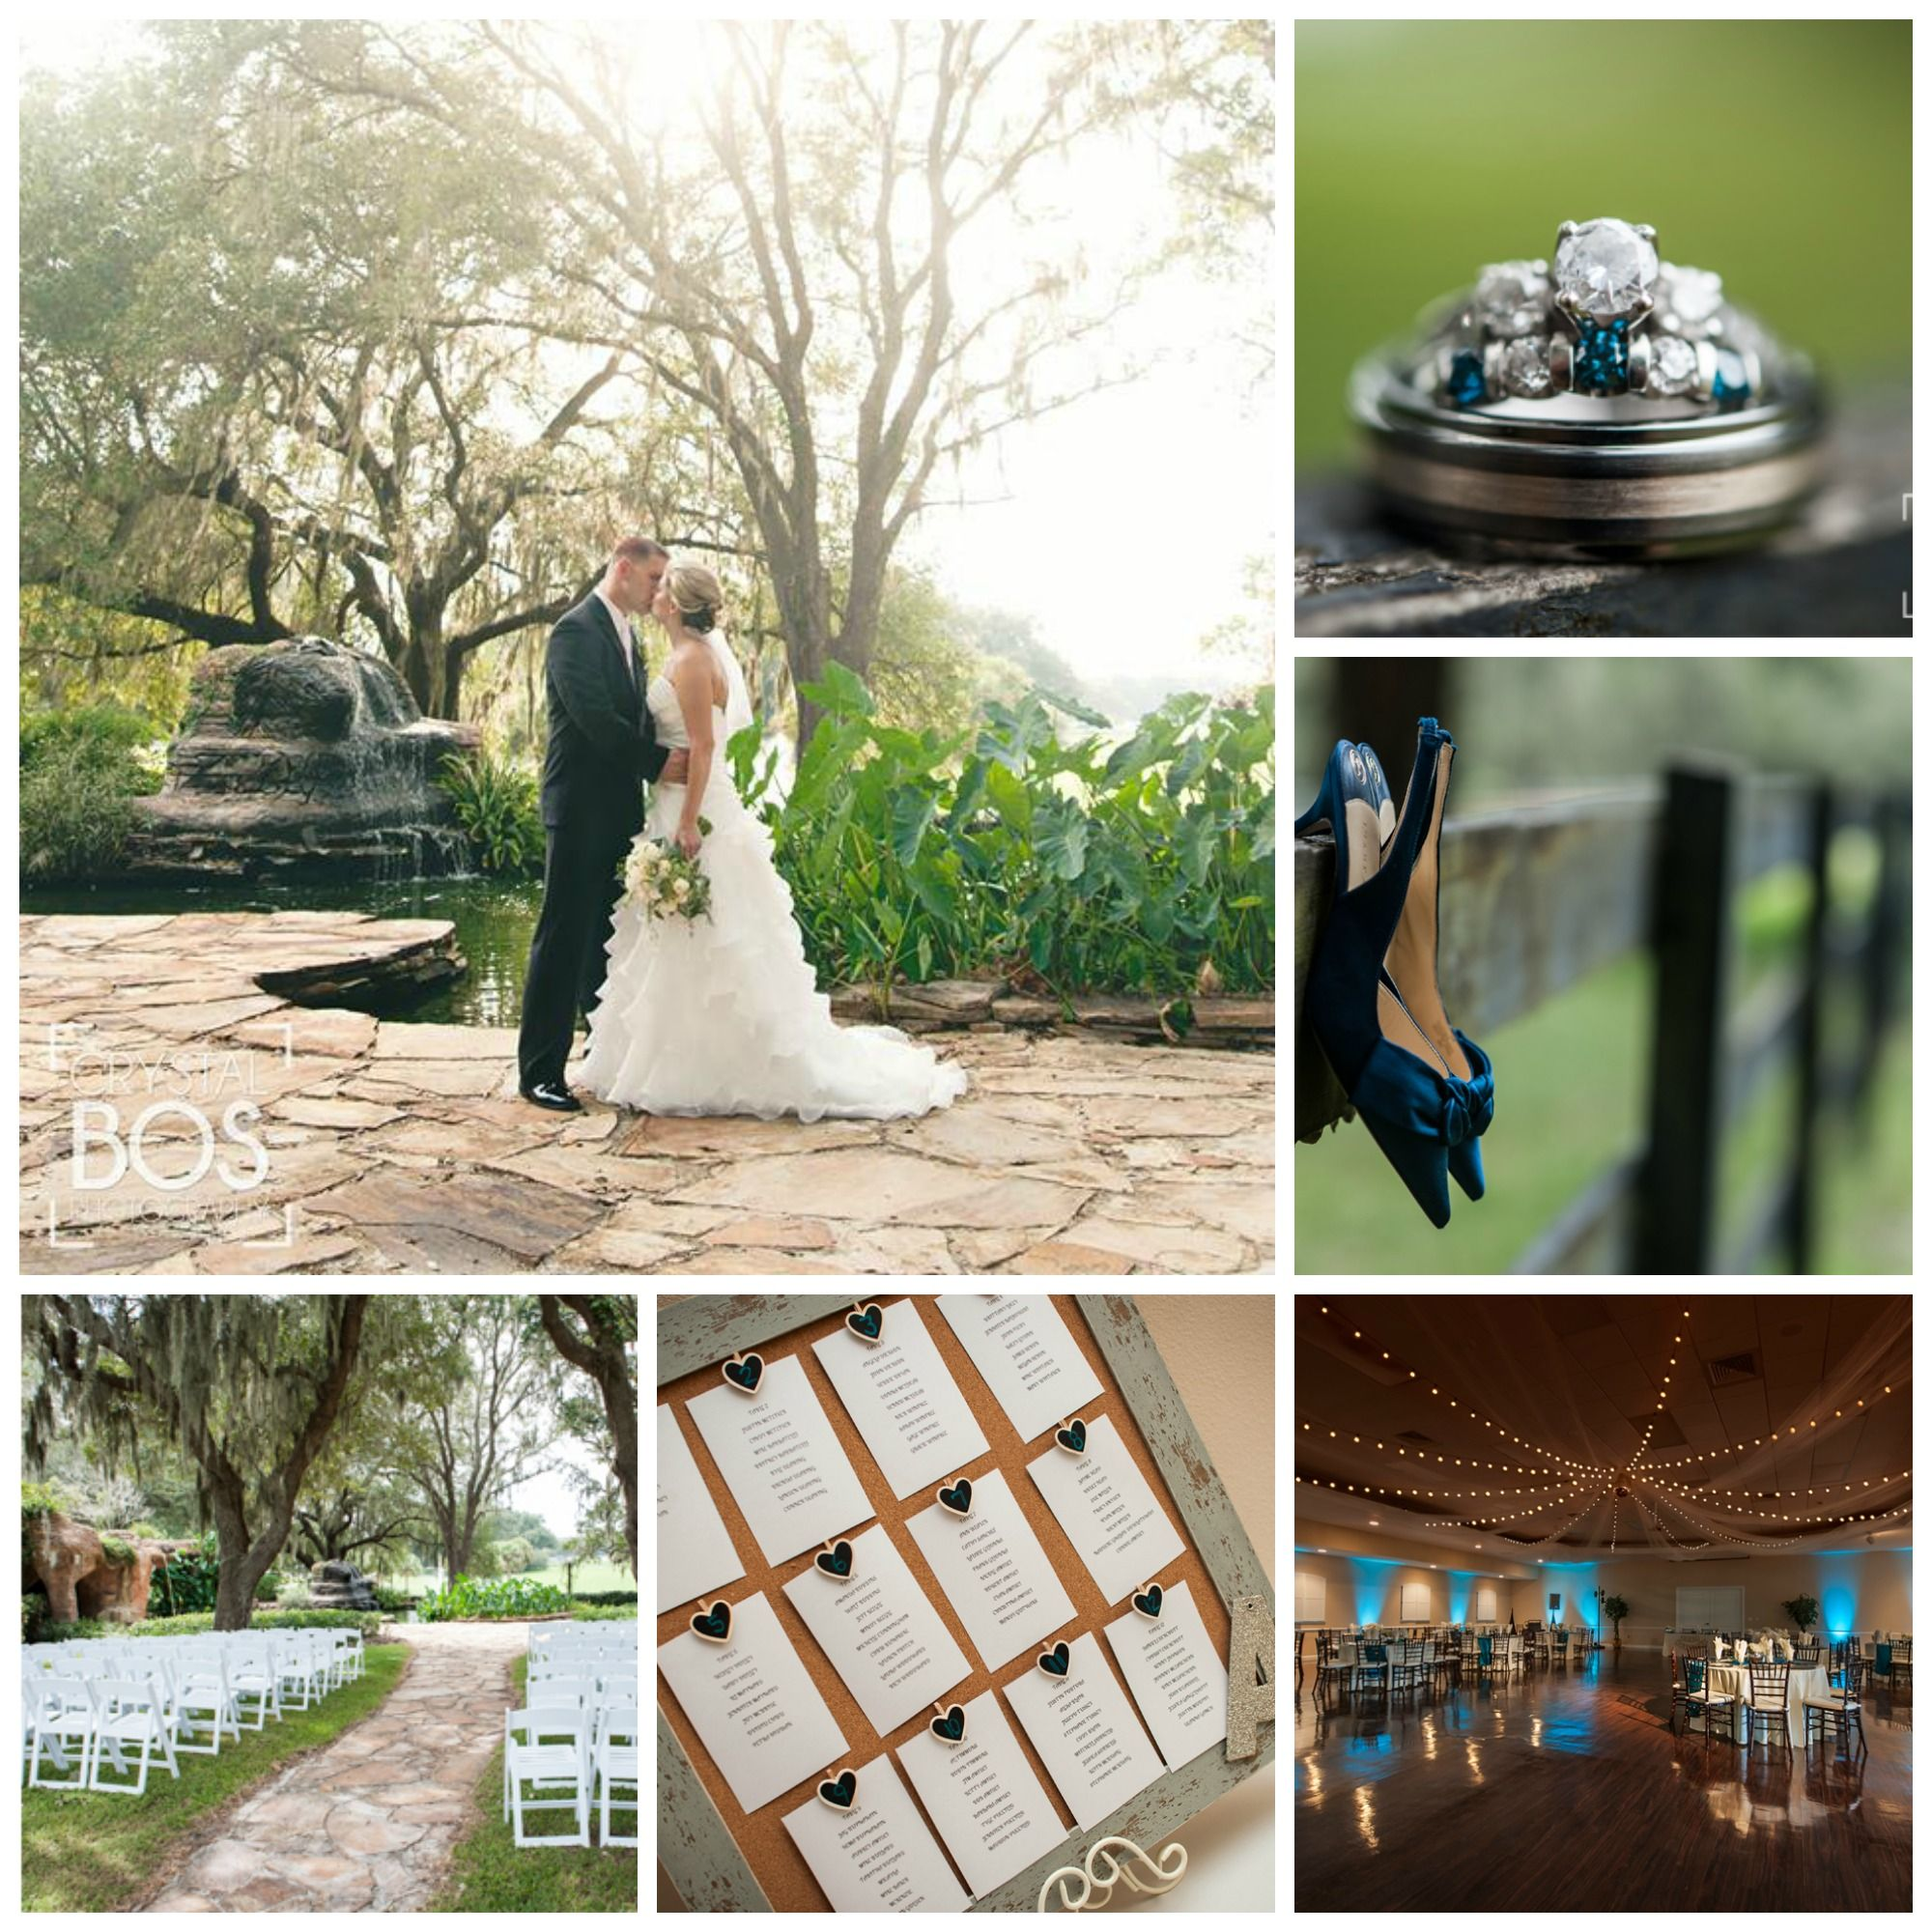 Rusticwedding At Grand Oaks Resort In Ocala Fl Photographed By Crystal Bos Photography Orlando Wedding Planner Orlando Wedding Venues Ranch Style Weddings